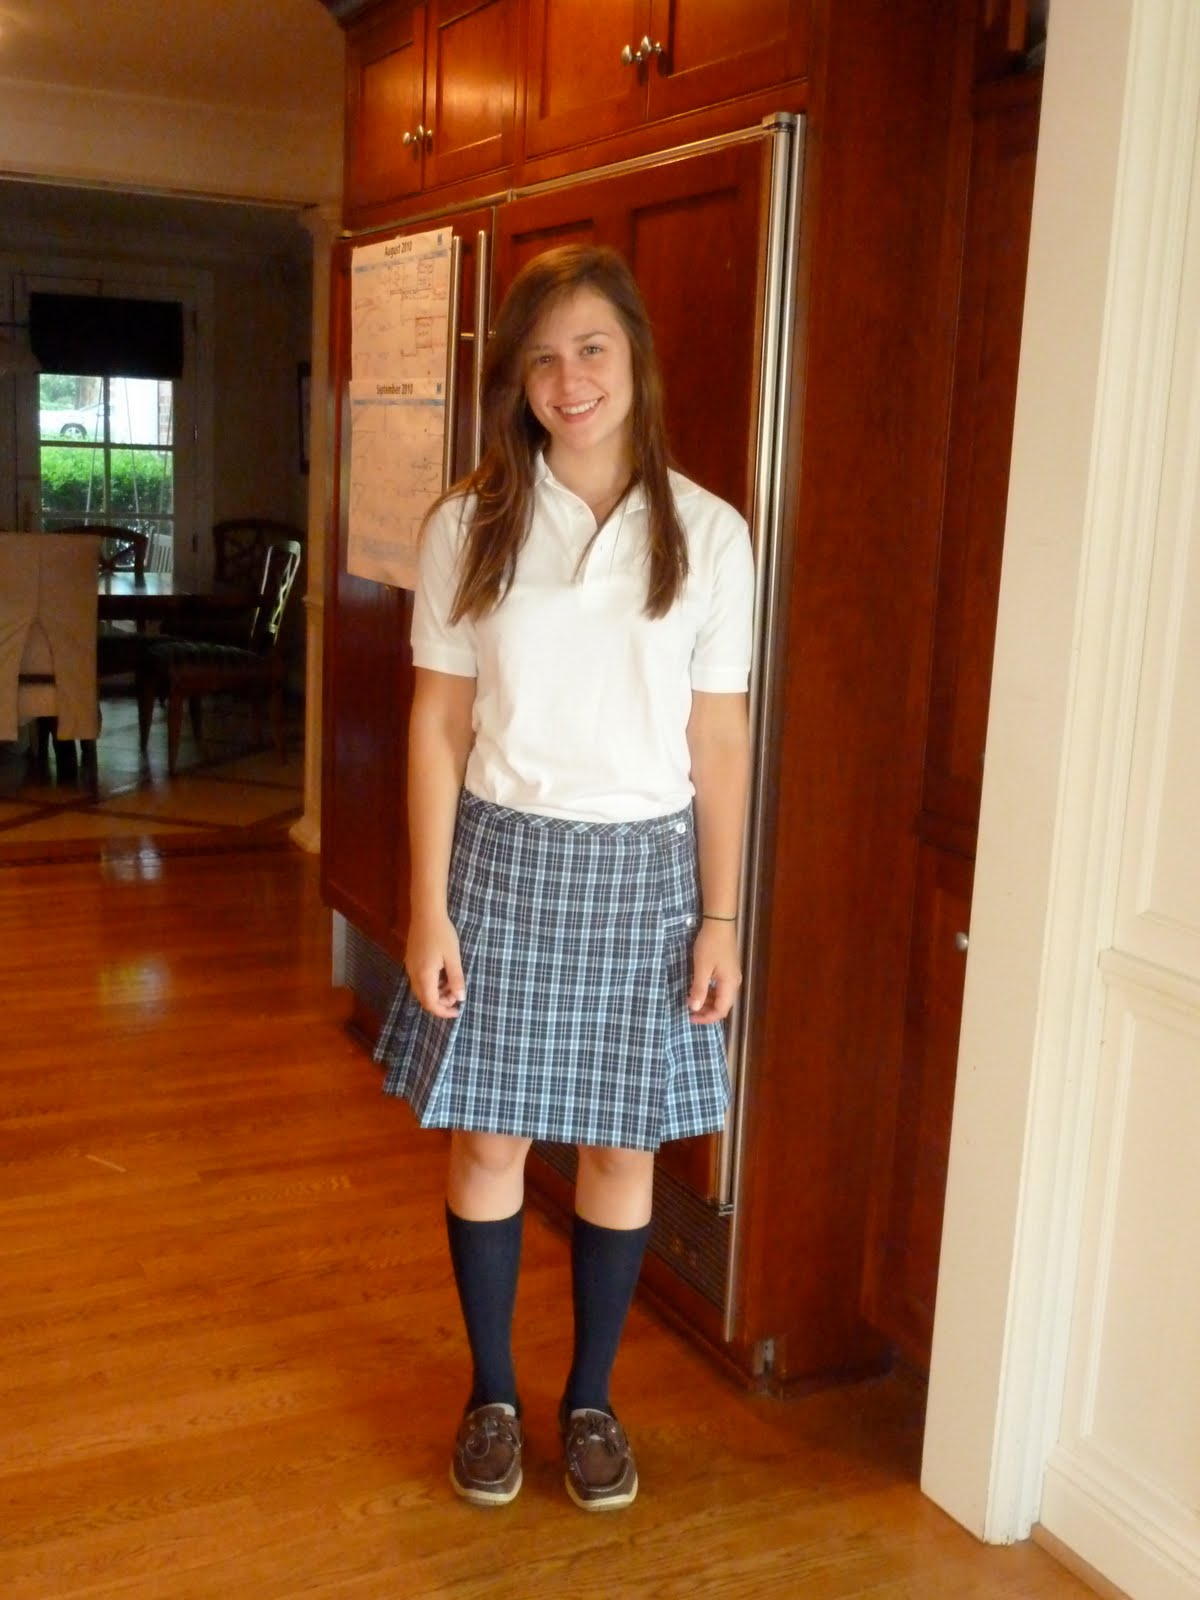 first day of high school Find out more about going back to school in this article  more about going back to school the first day  signals a move to middle school or junior high,.